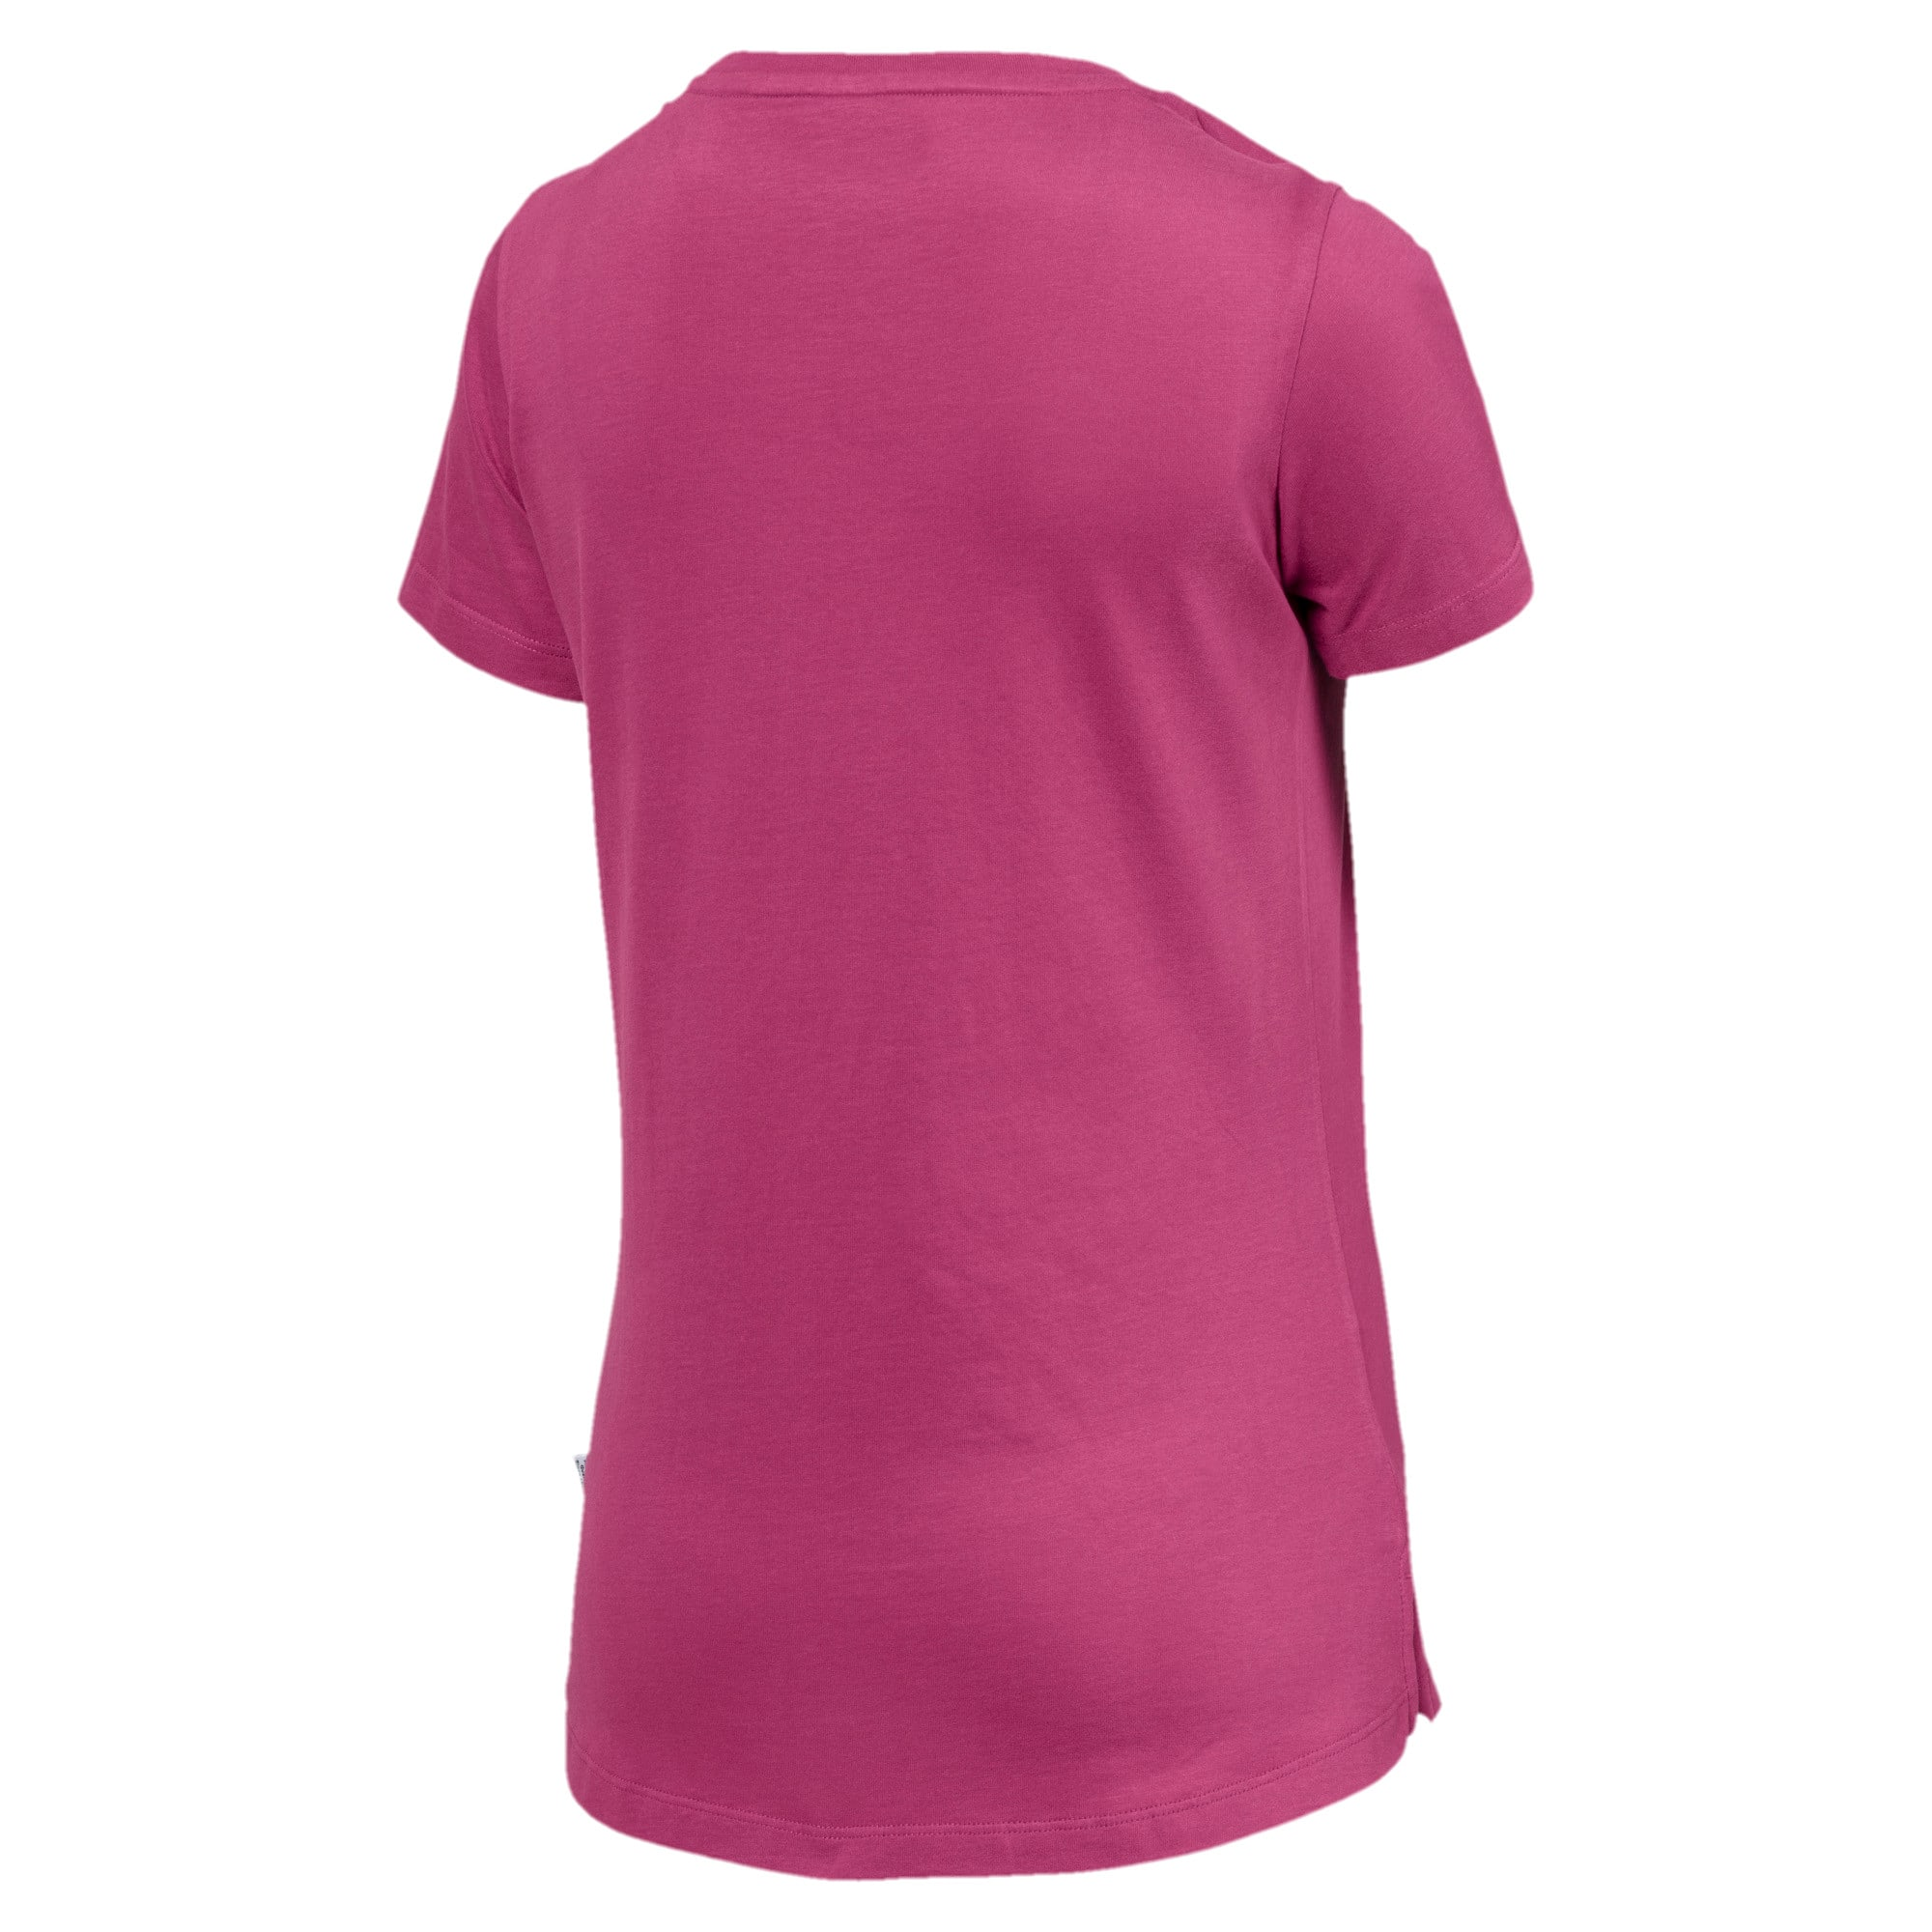 Thumbnail 3 of Athletic Women's Tee, Magenta Haze-Metalic Ash, medium